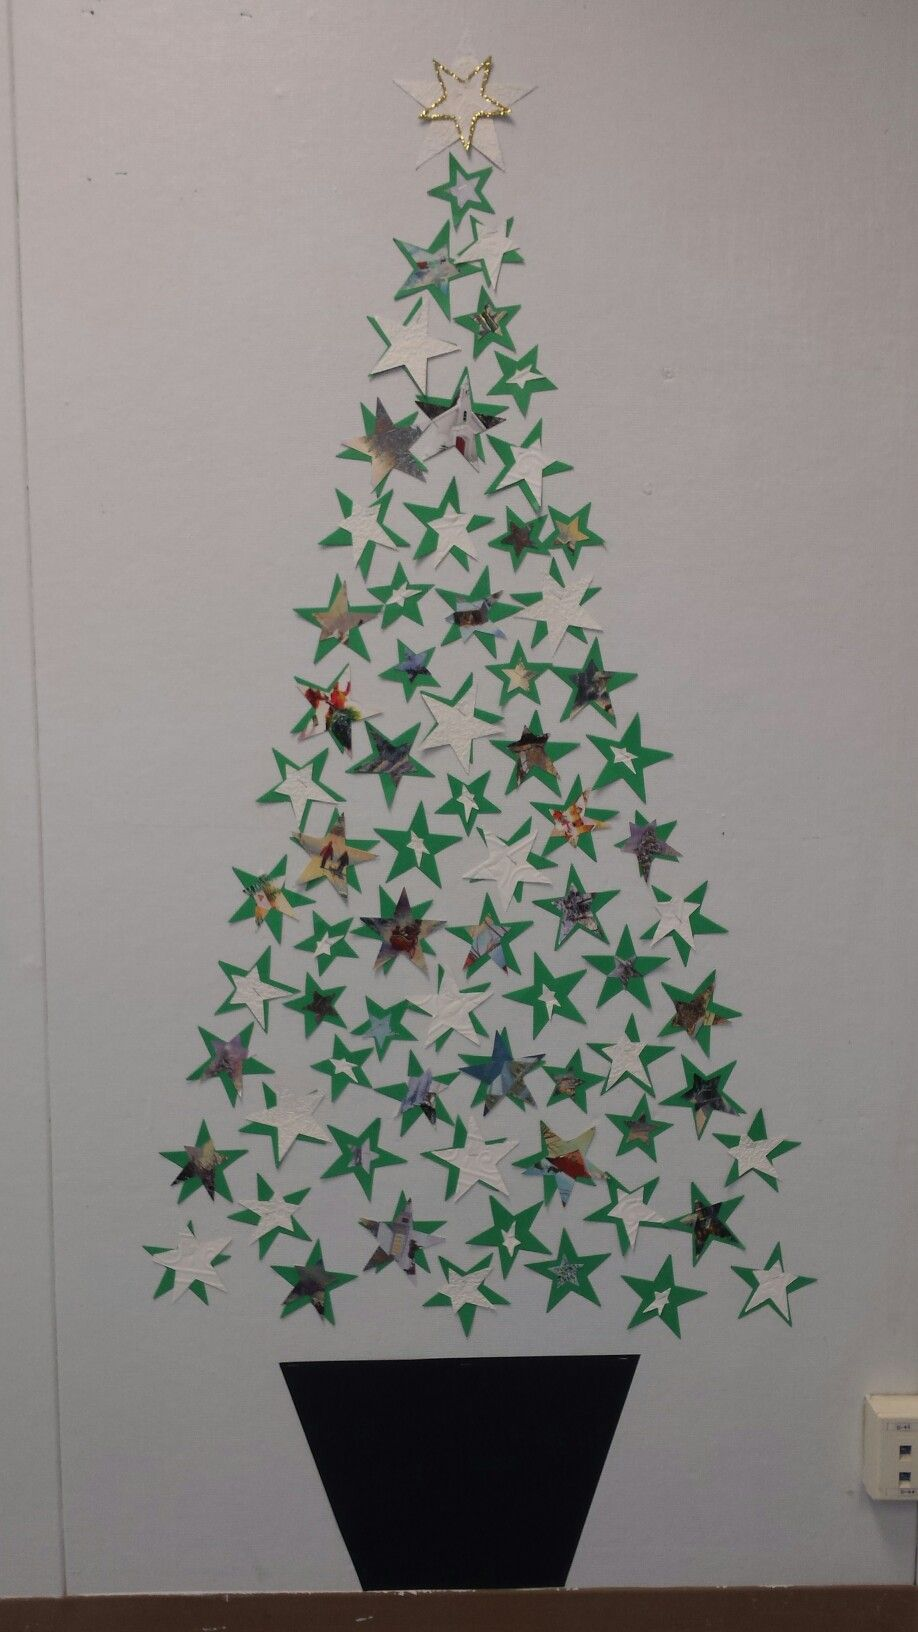 Christmas tree with stars #christmasdoordecorationsforschool